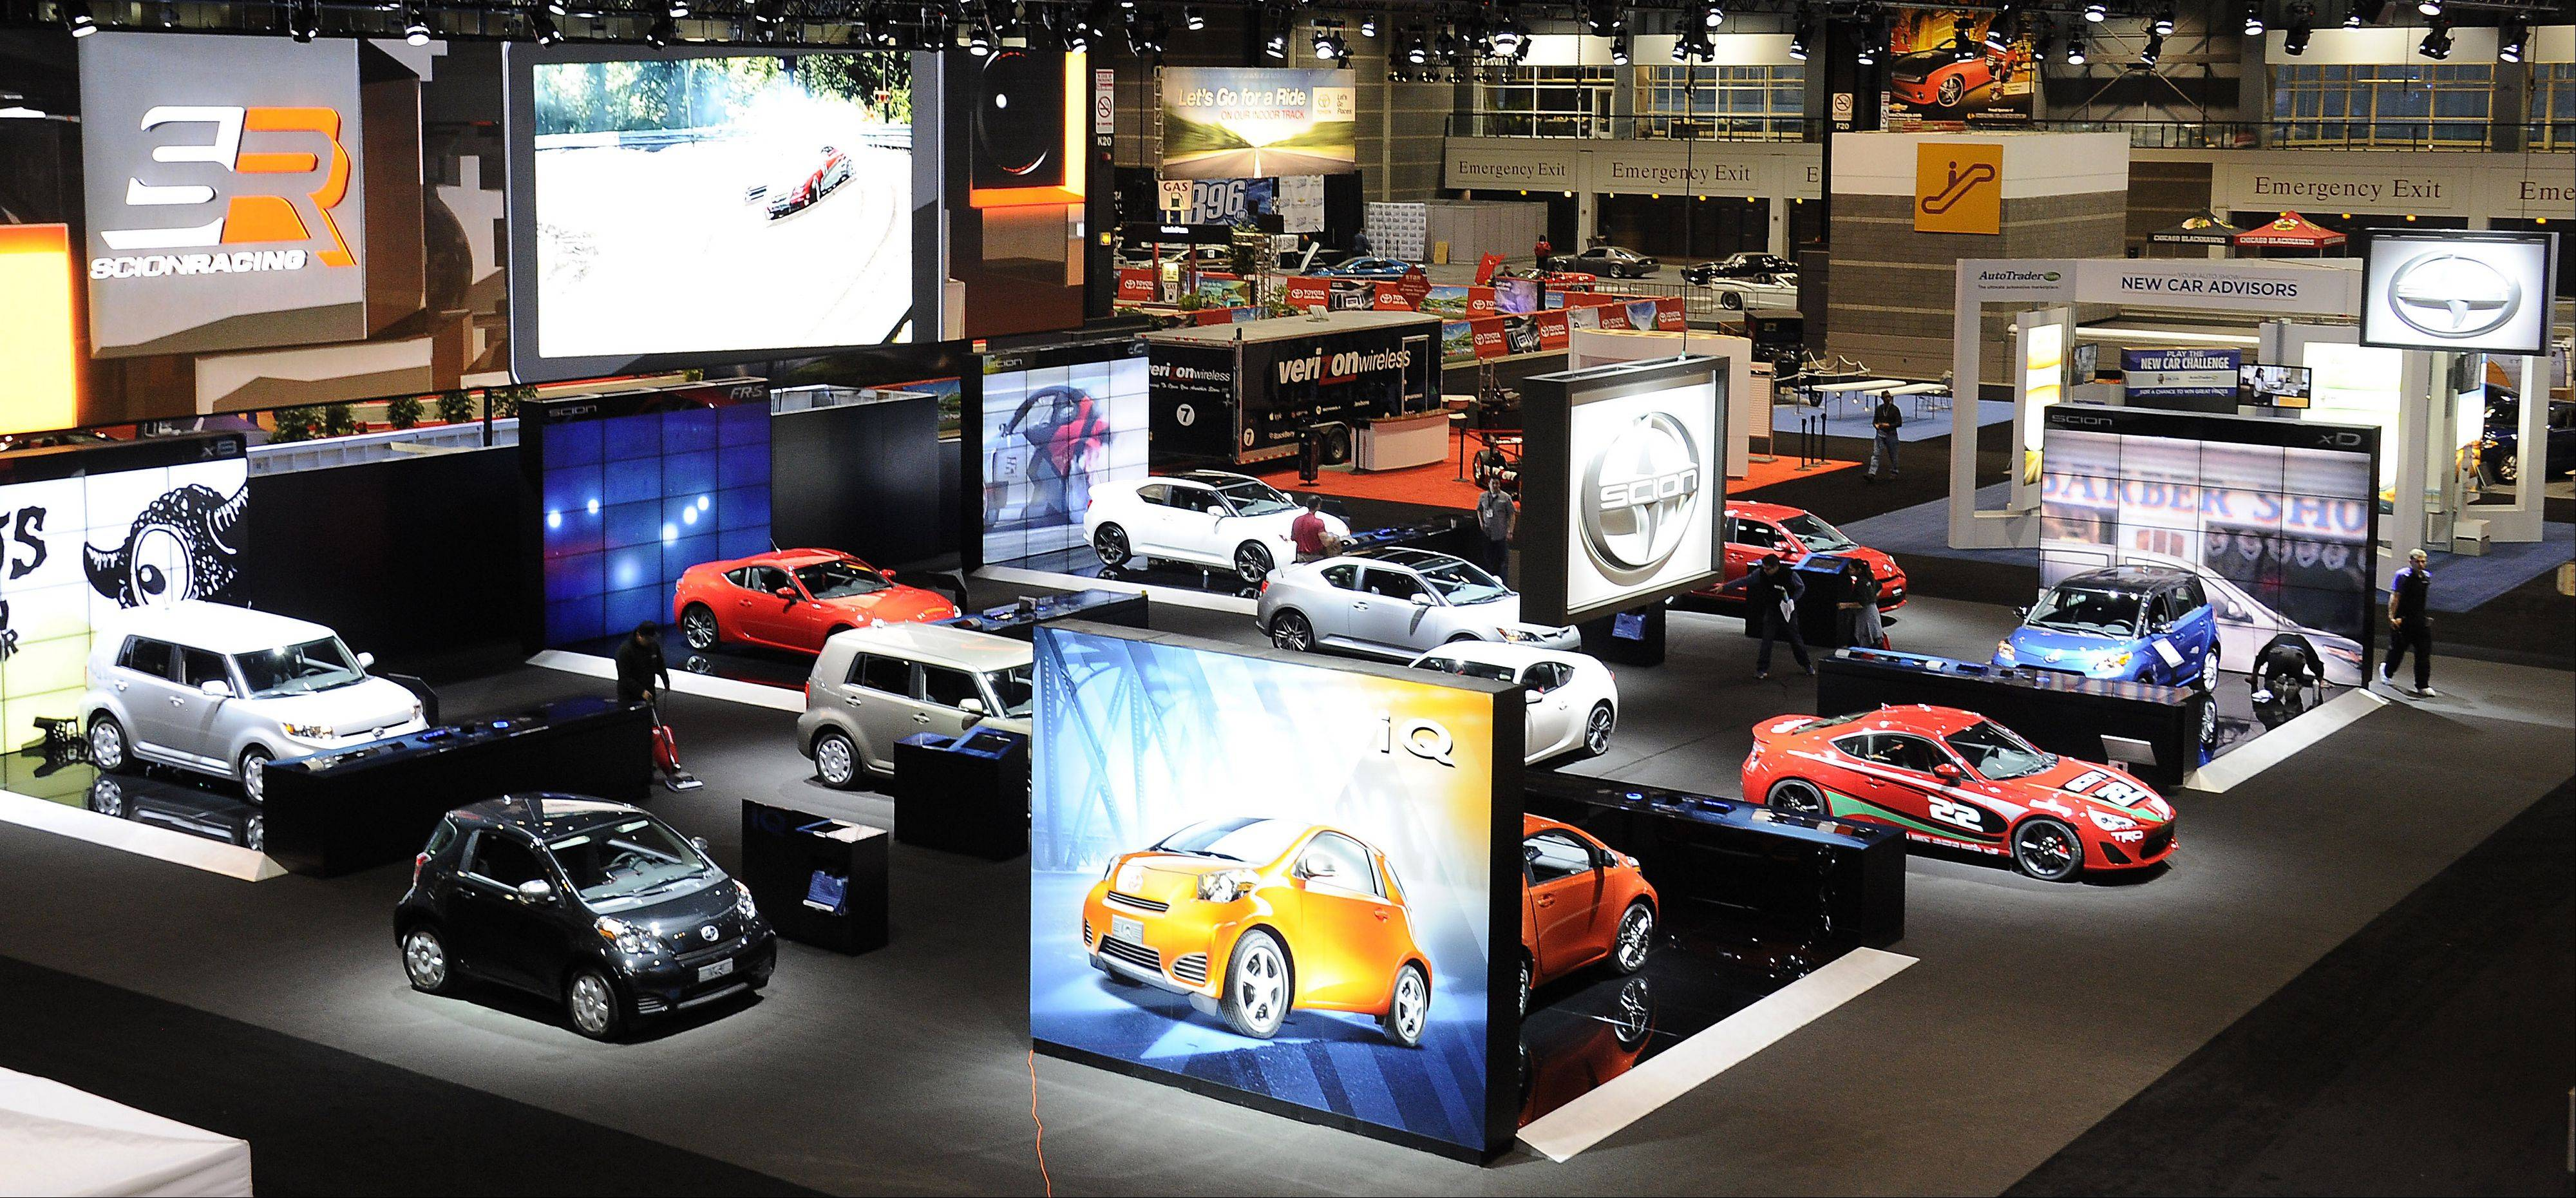 Pull over, 'Speed Racer': Futuristic models part of Chicago Auto Show